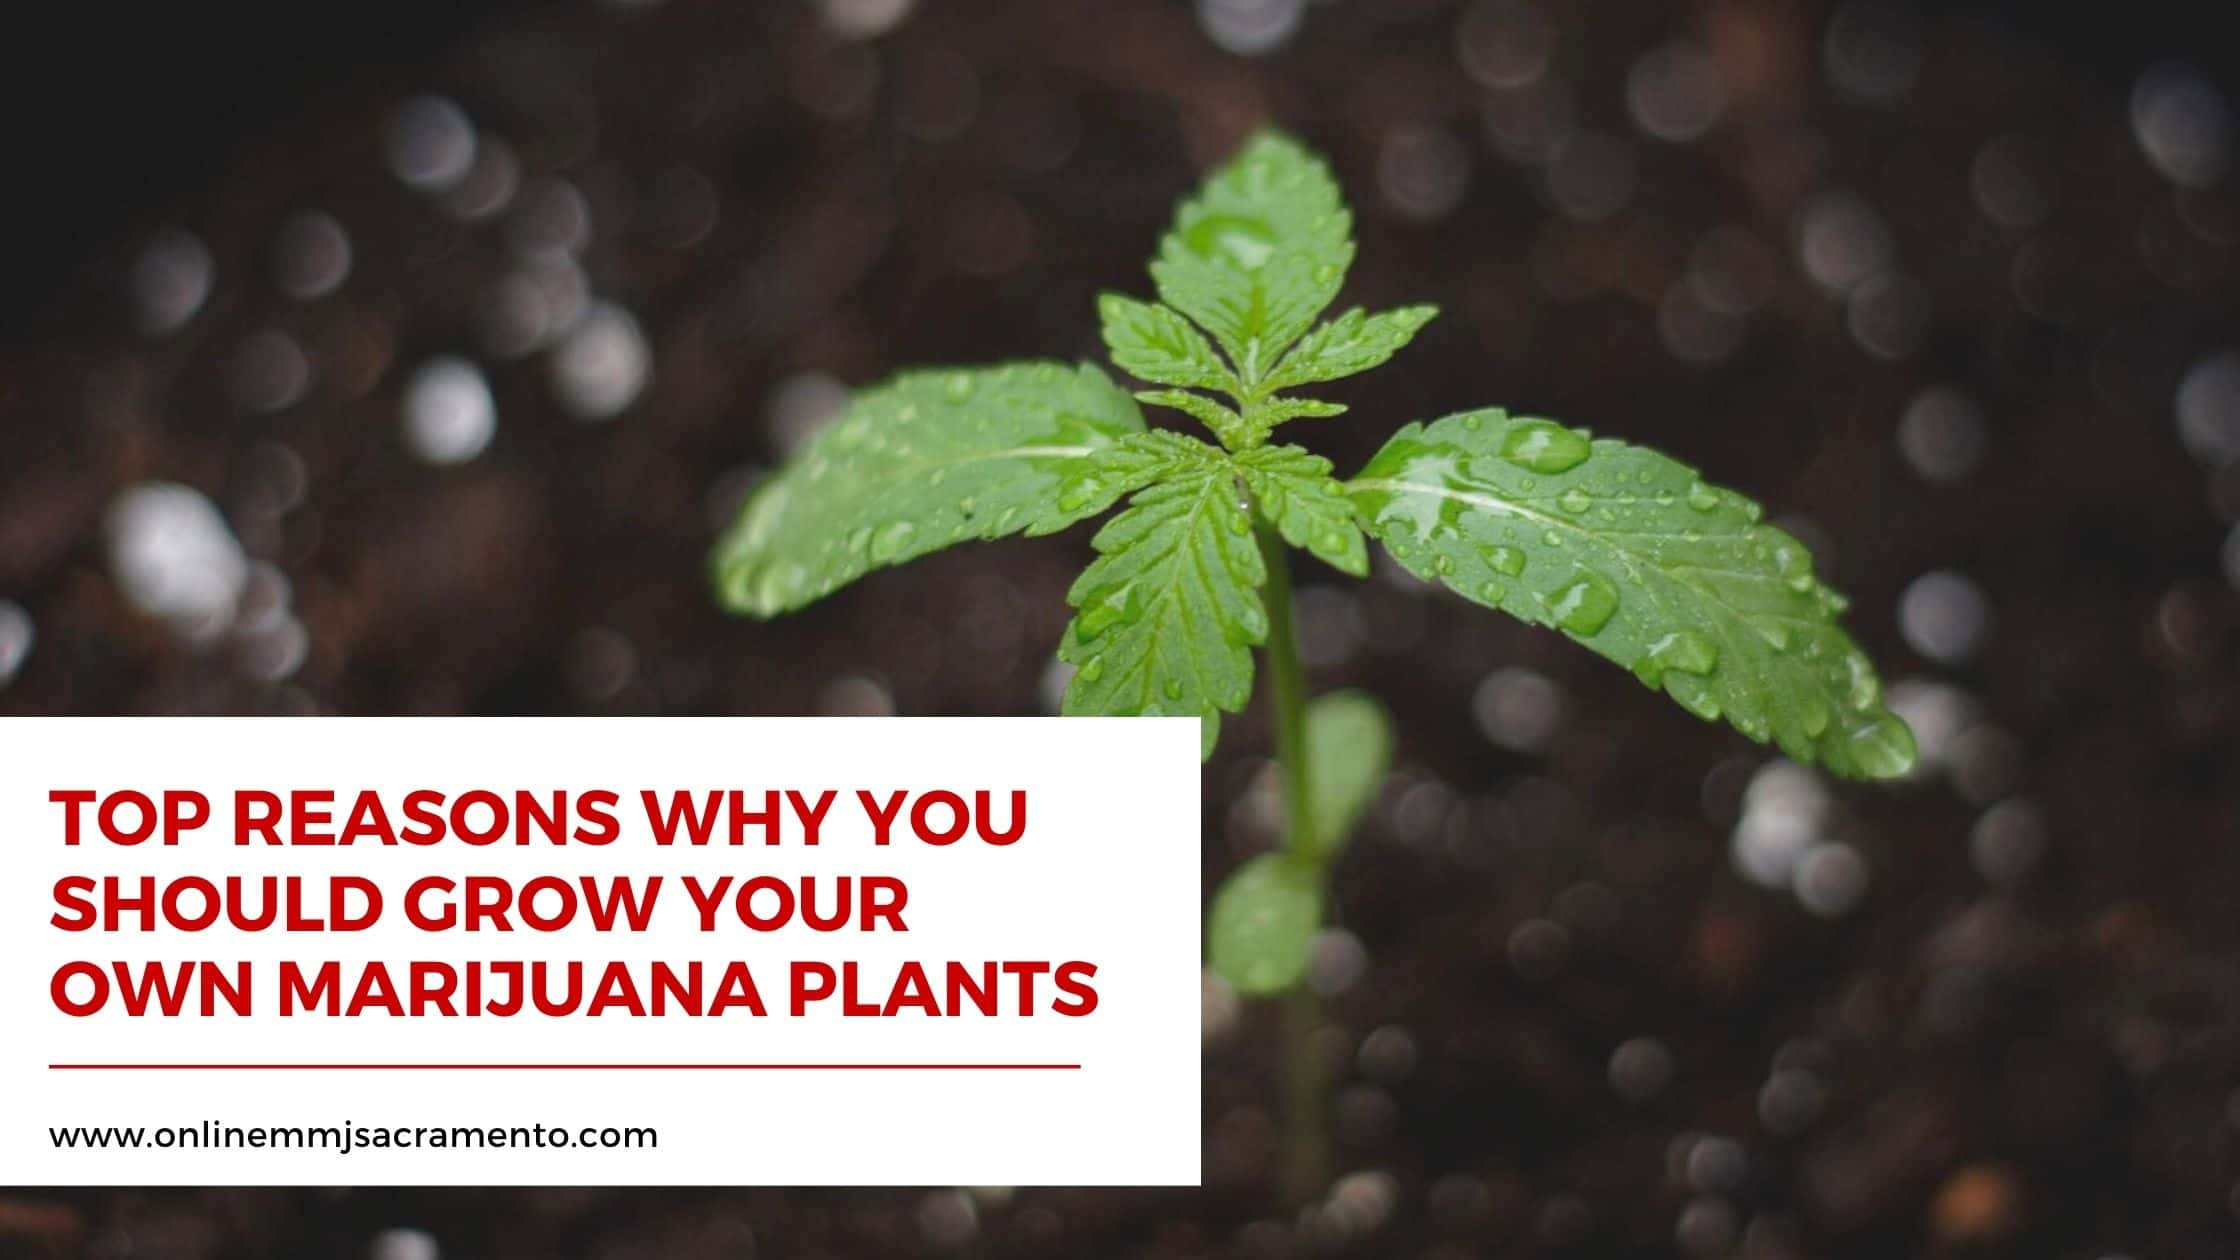 Top Reasons Why You Should Grow Your Own Marijuana Plants